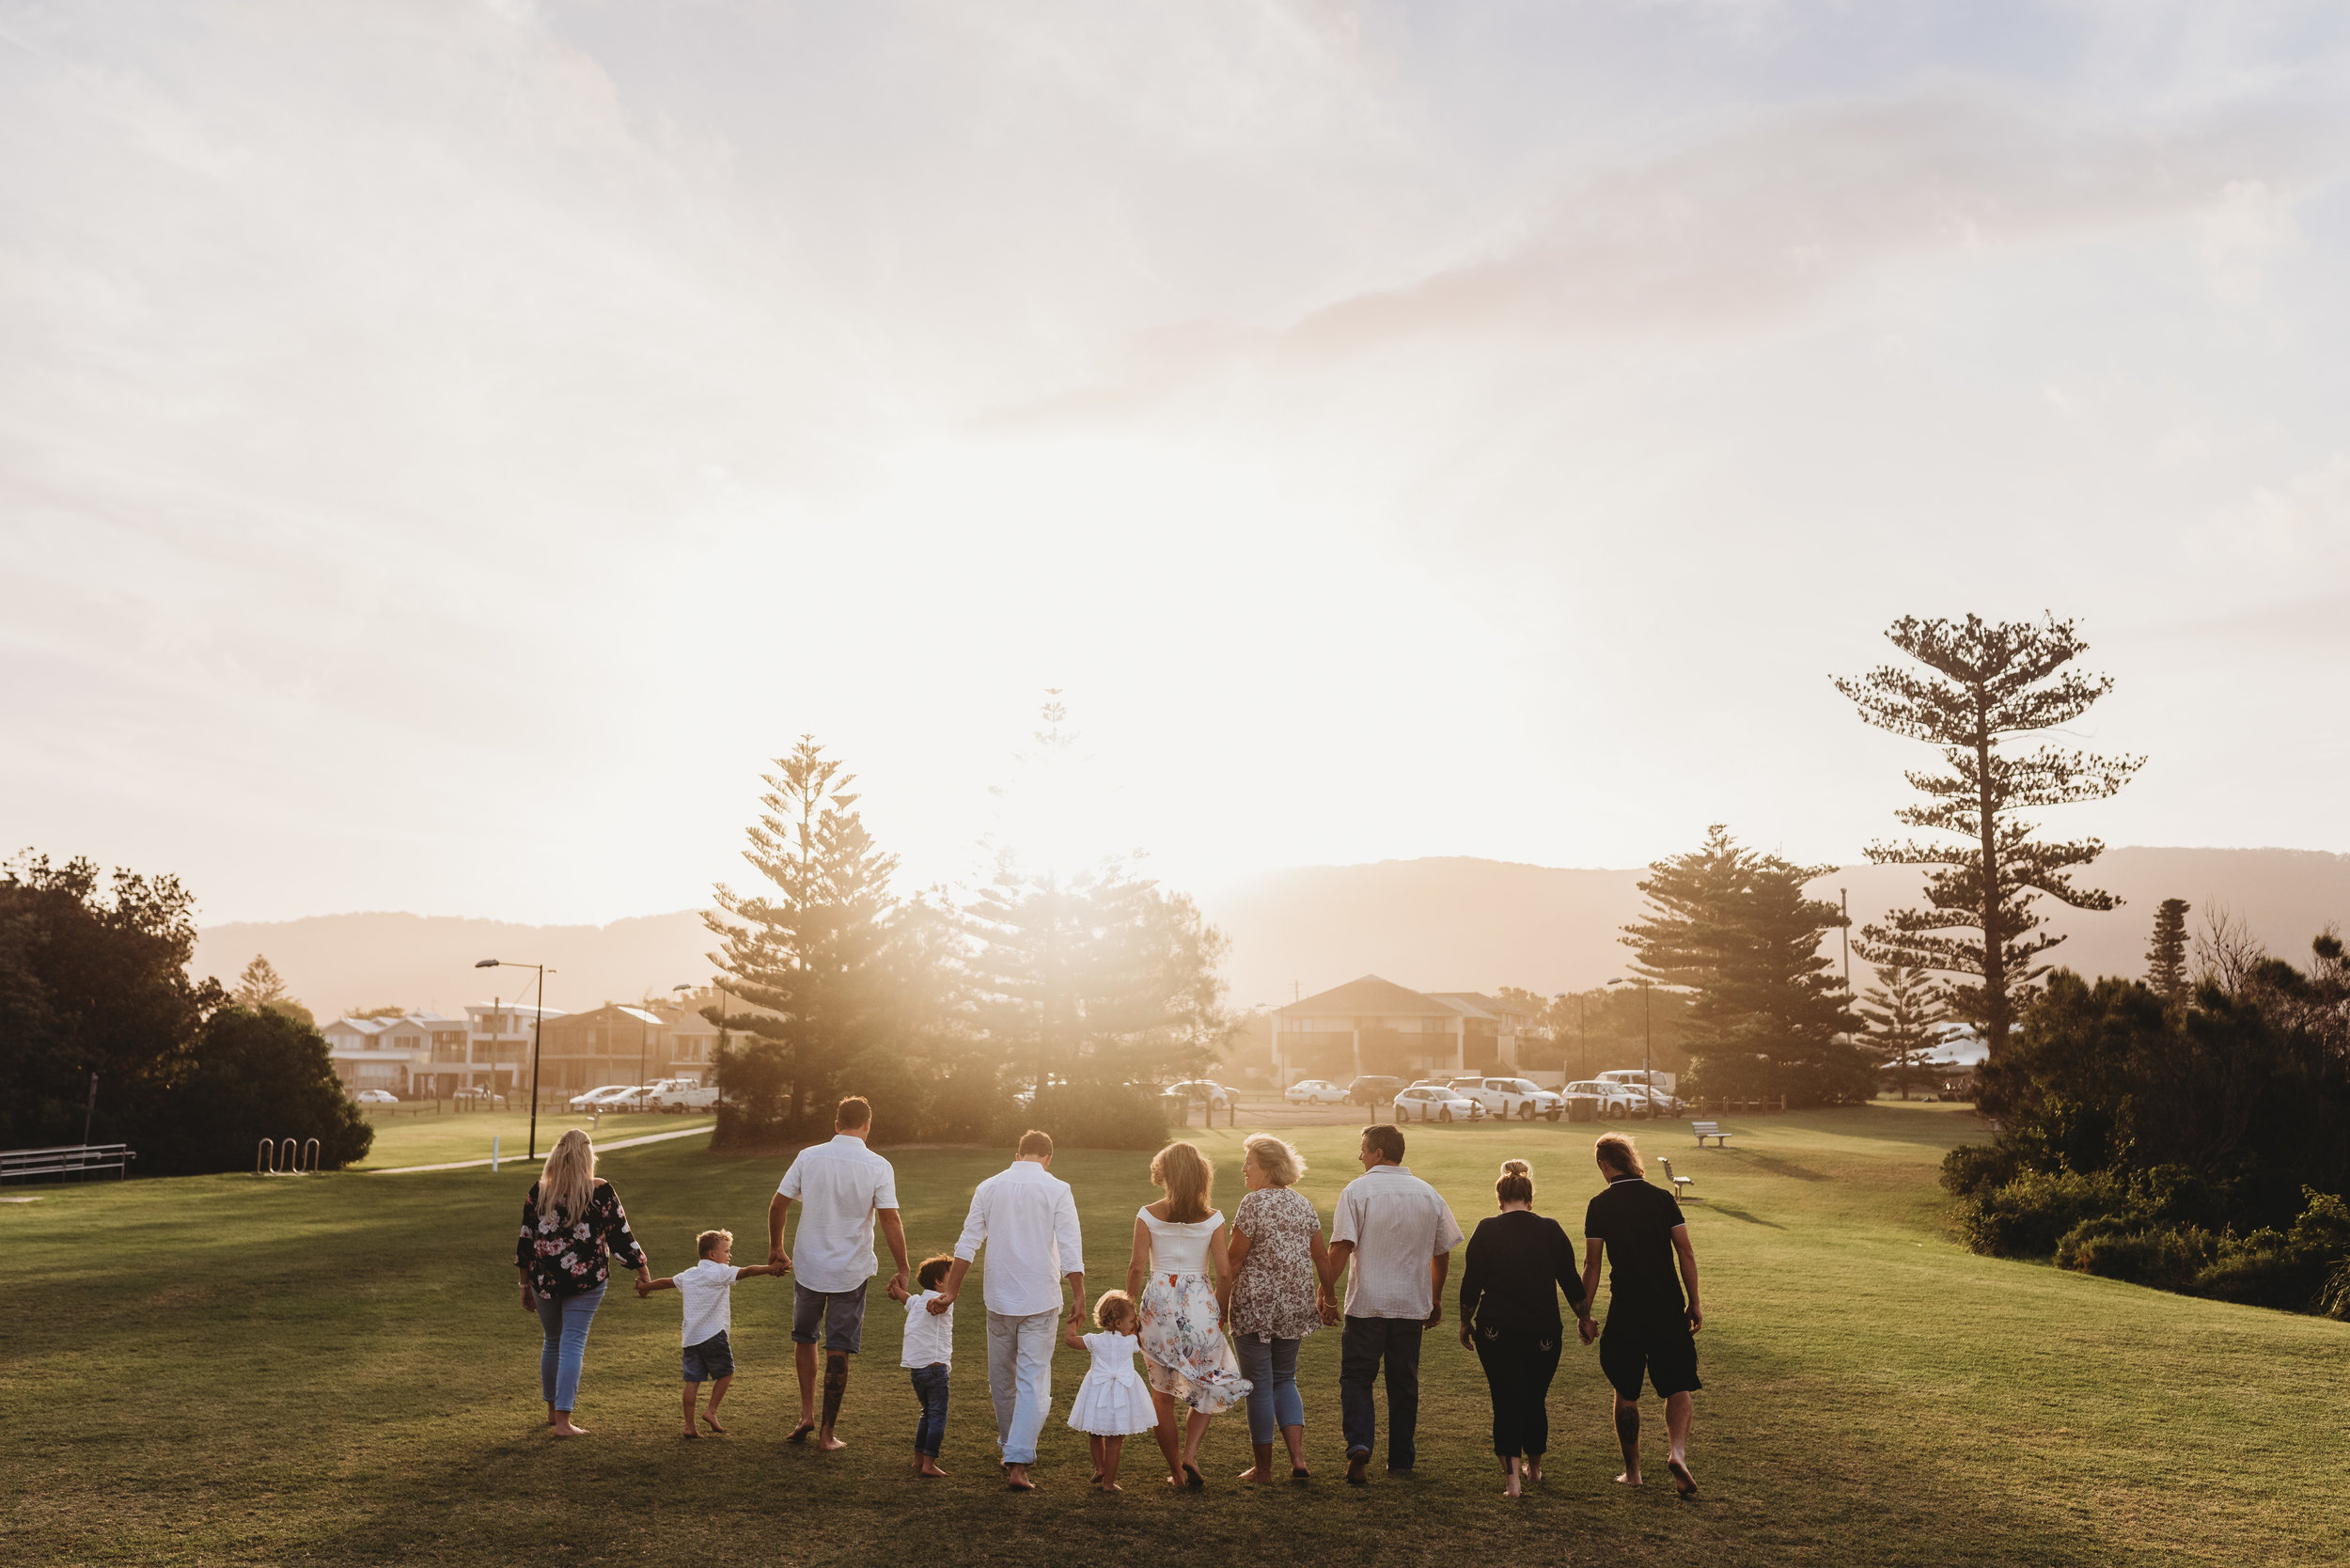 The Worthington's - Sandon Point, Wollongong Extended Family Session     27th February 2019